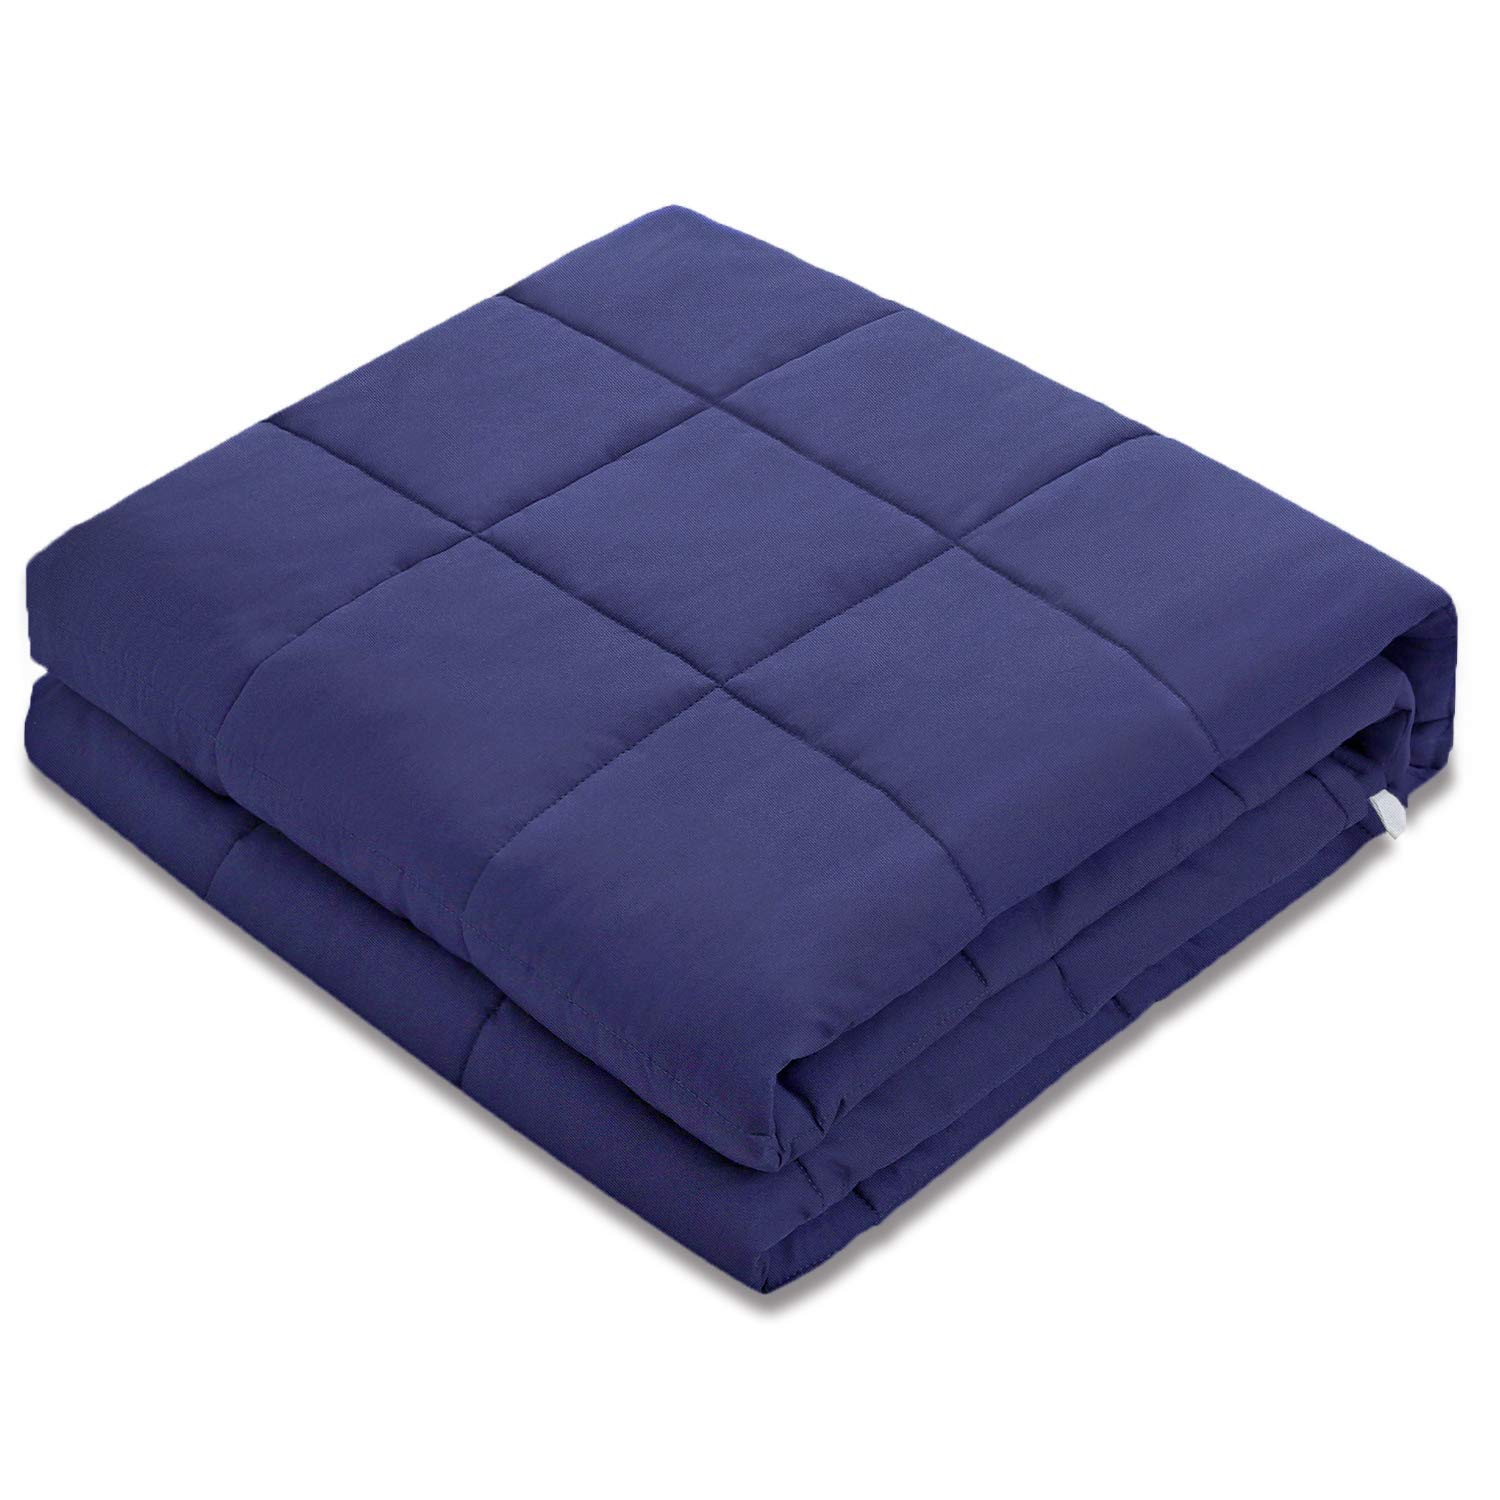 Amy Garden 7 Layers Breathable 100% Cotton Preminum Weighted Blanket (48x72  Inch,15 lbs for 120-180 lbs Individual, Navy) | 2 0 Adults Heavy Blanket